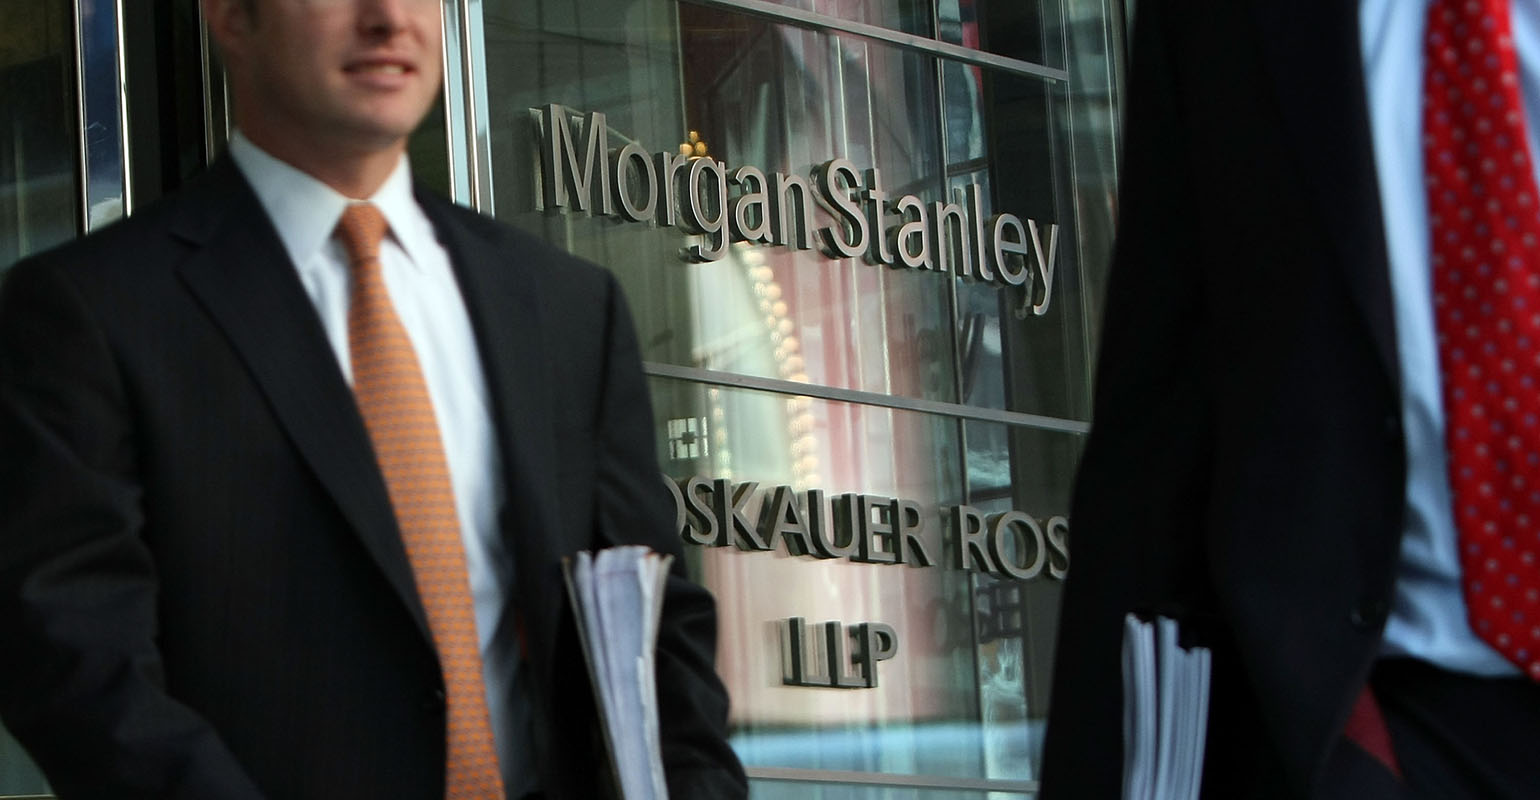 Morgan Stanley Investor Relations >> Morgan Stanley Said to Seek Fees From ETF Issuers to Carry Funds | Wealth Management